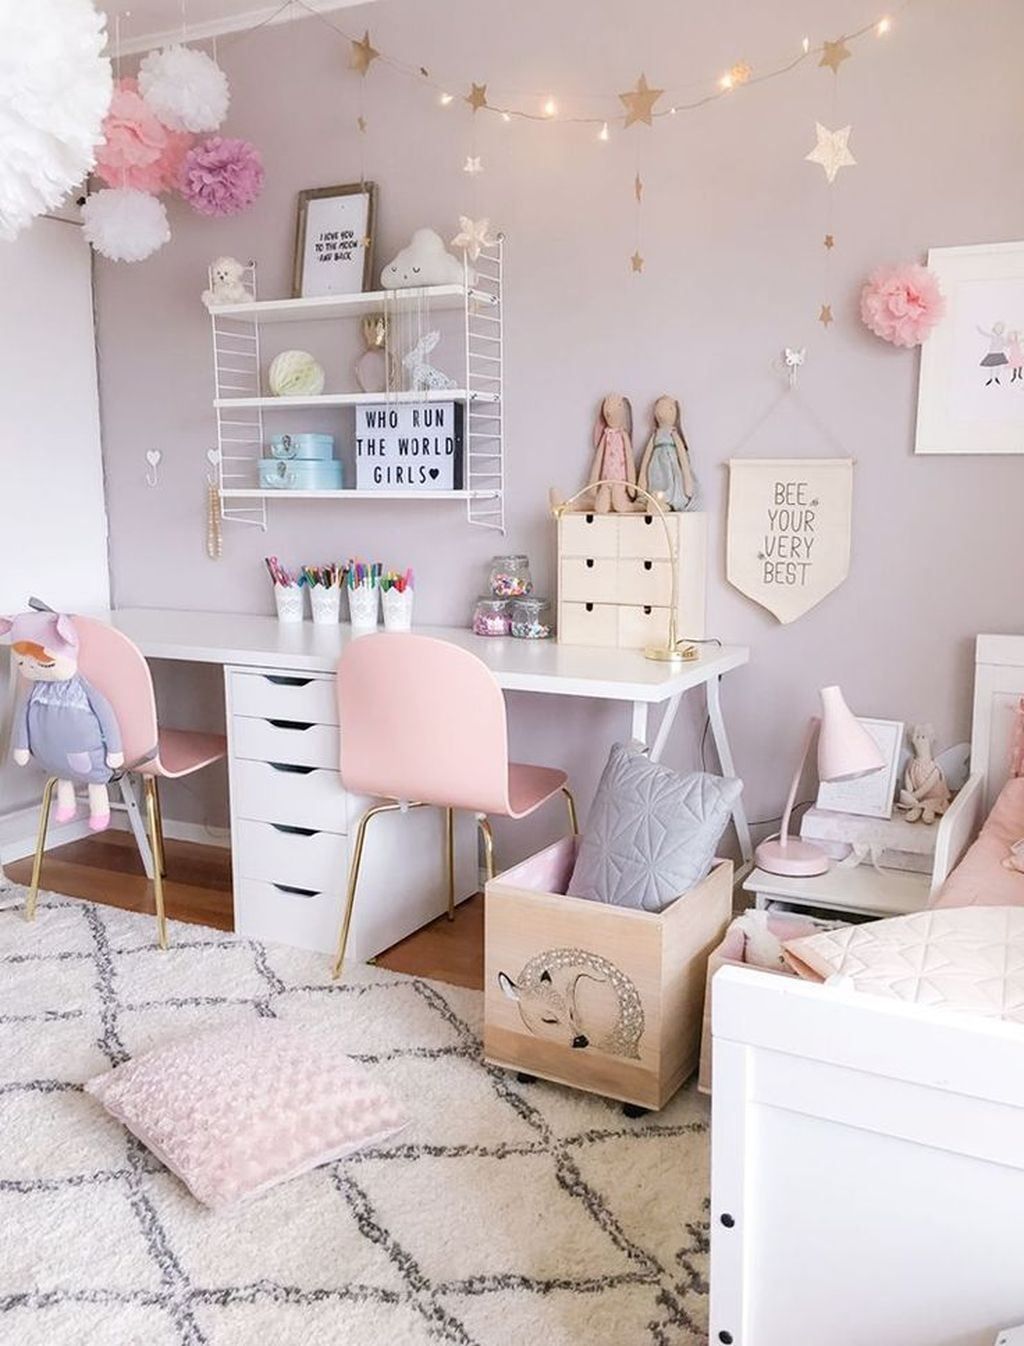 39 Beautiful And Cute Tiny Bedroom Ideas For Girls | Room ...